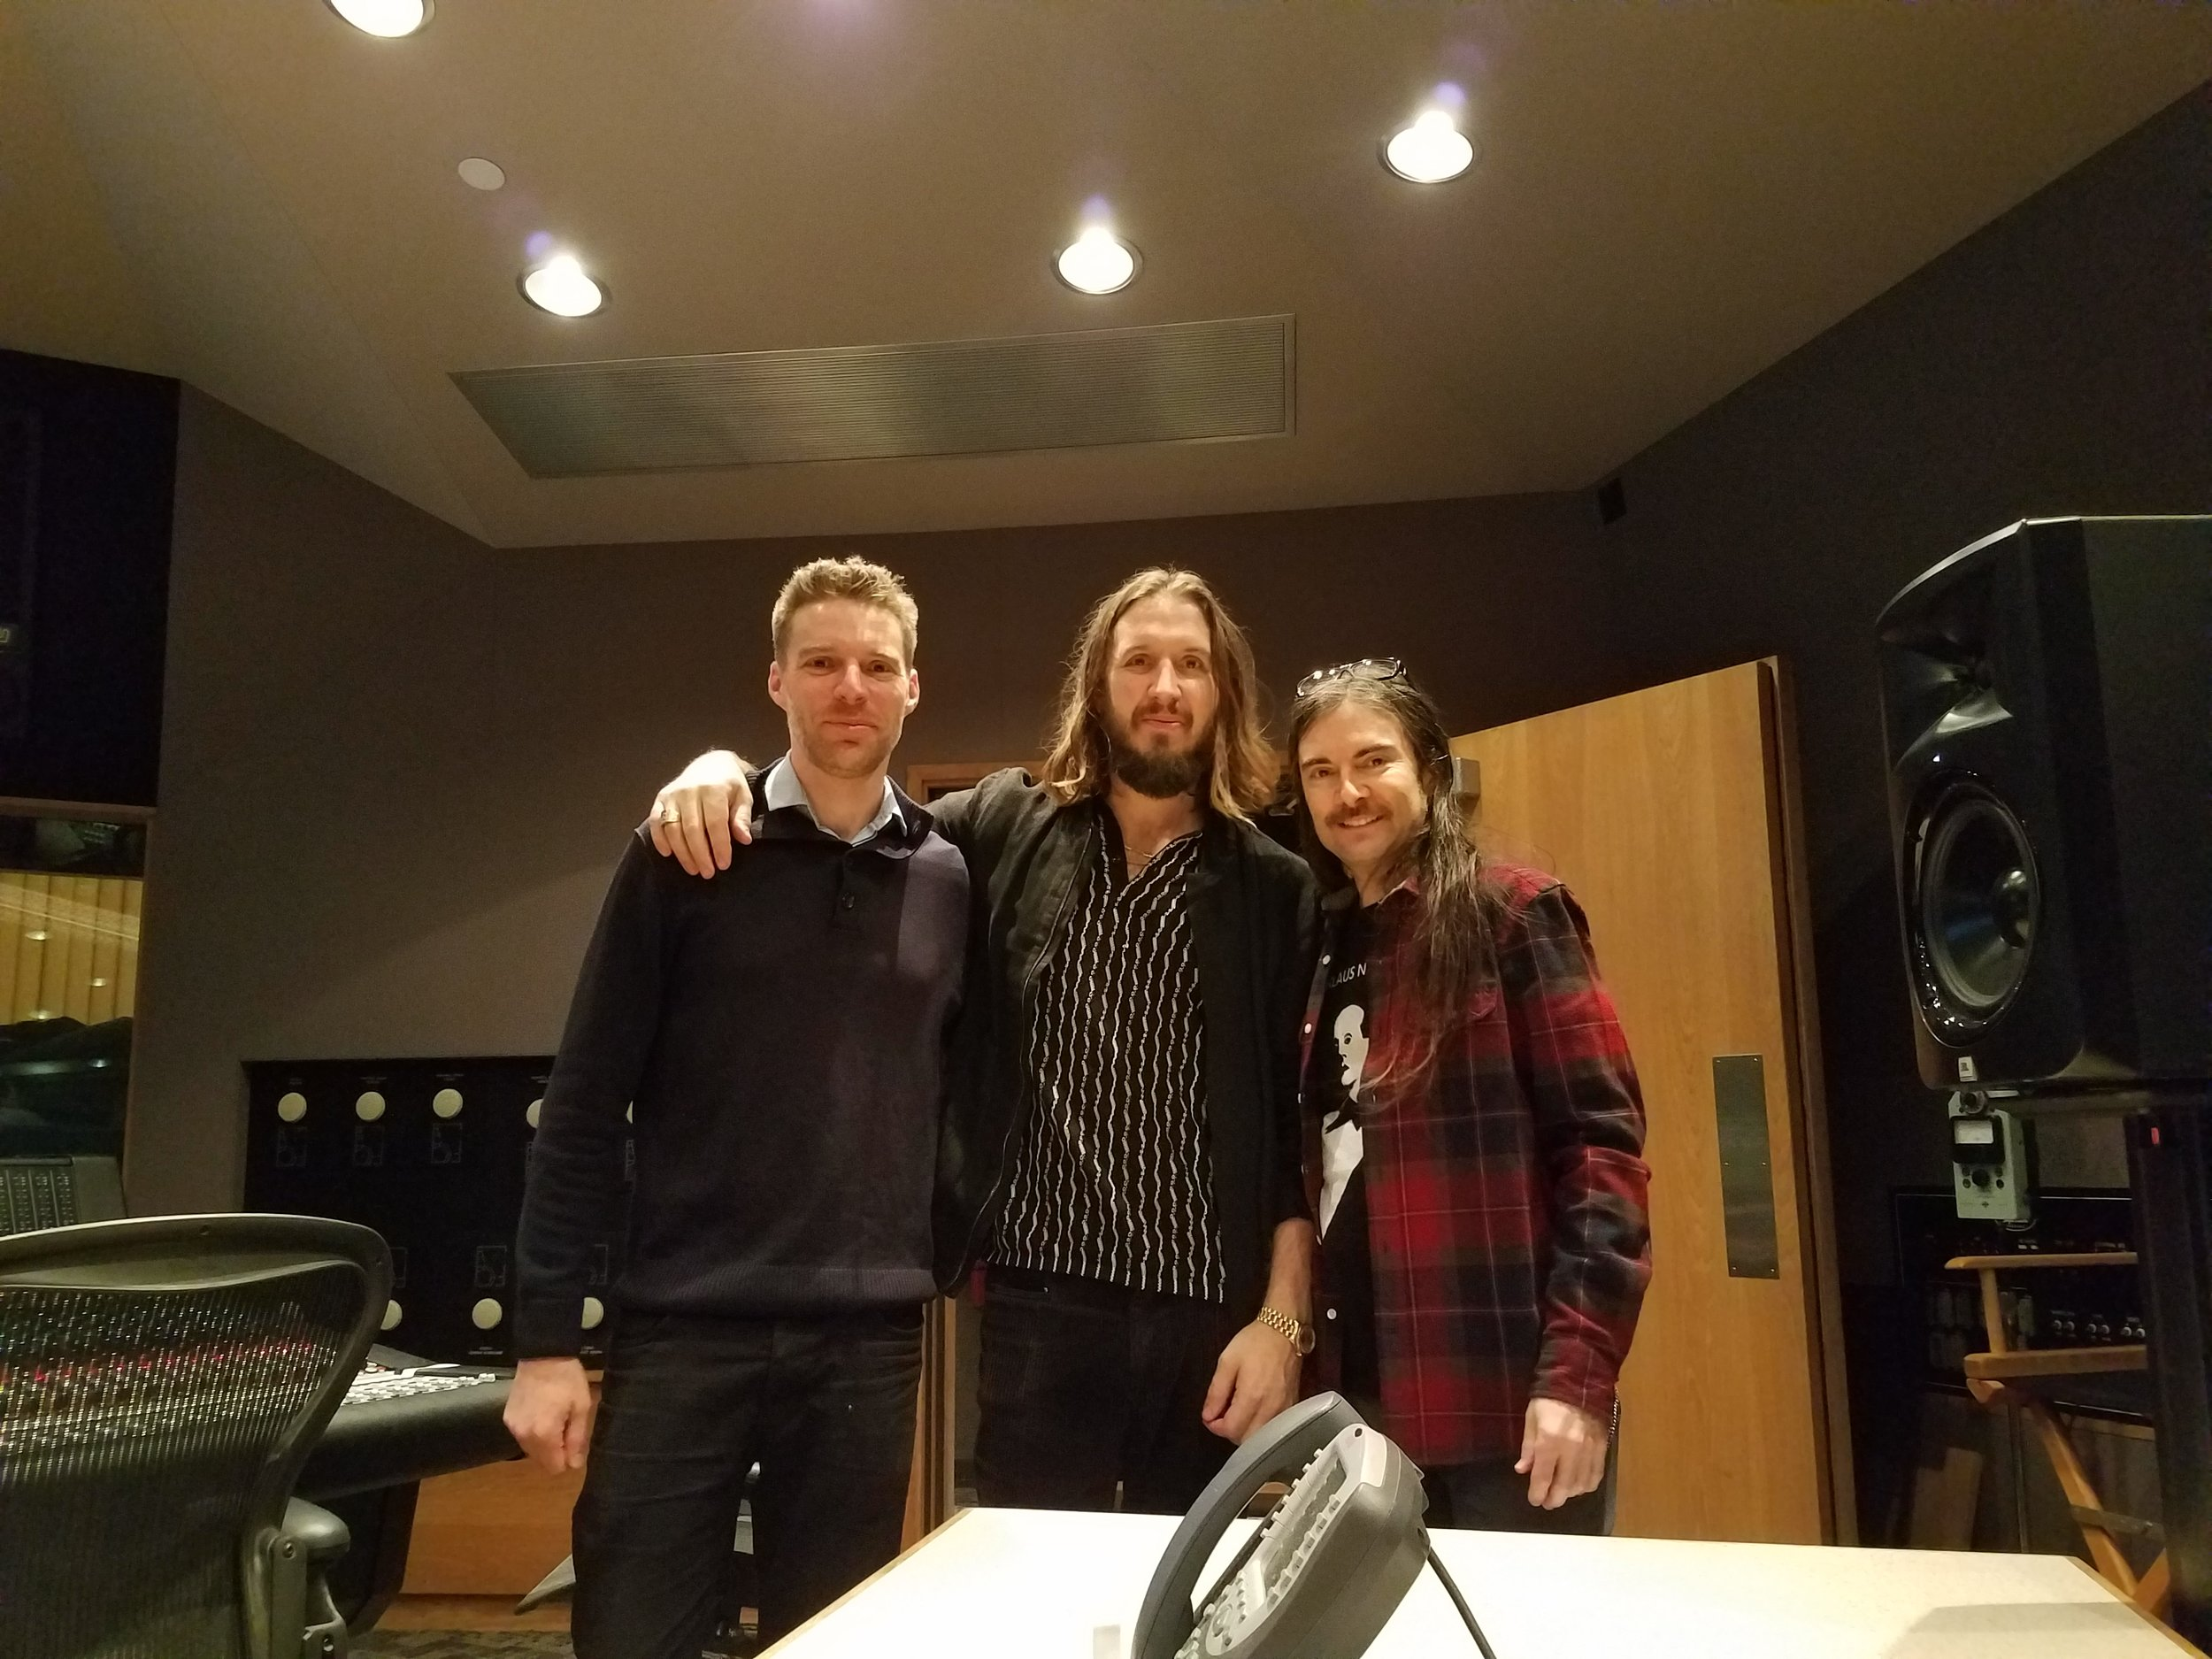 Above : Steve Aho (L); Emile Haynie (C); Roger Joseph Manning Jr. (R) recording in the studio for The Greatest Showman